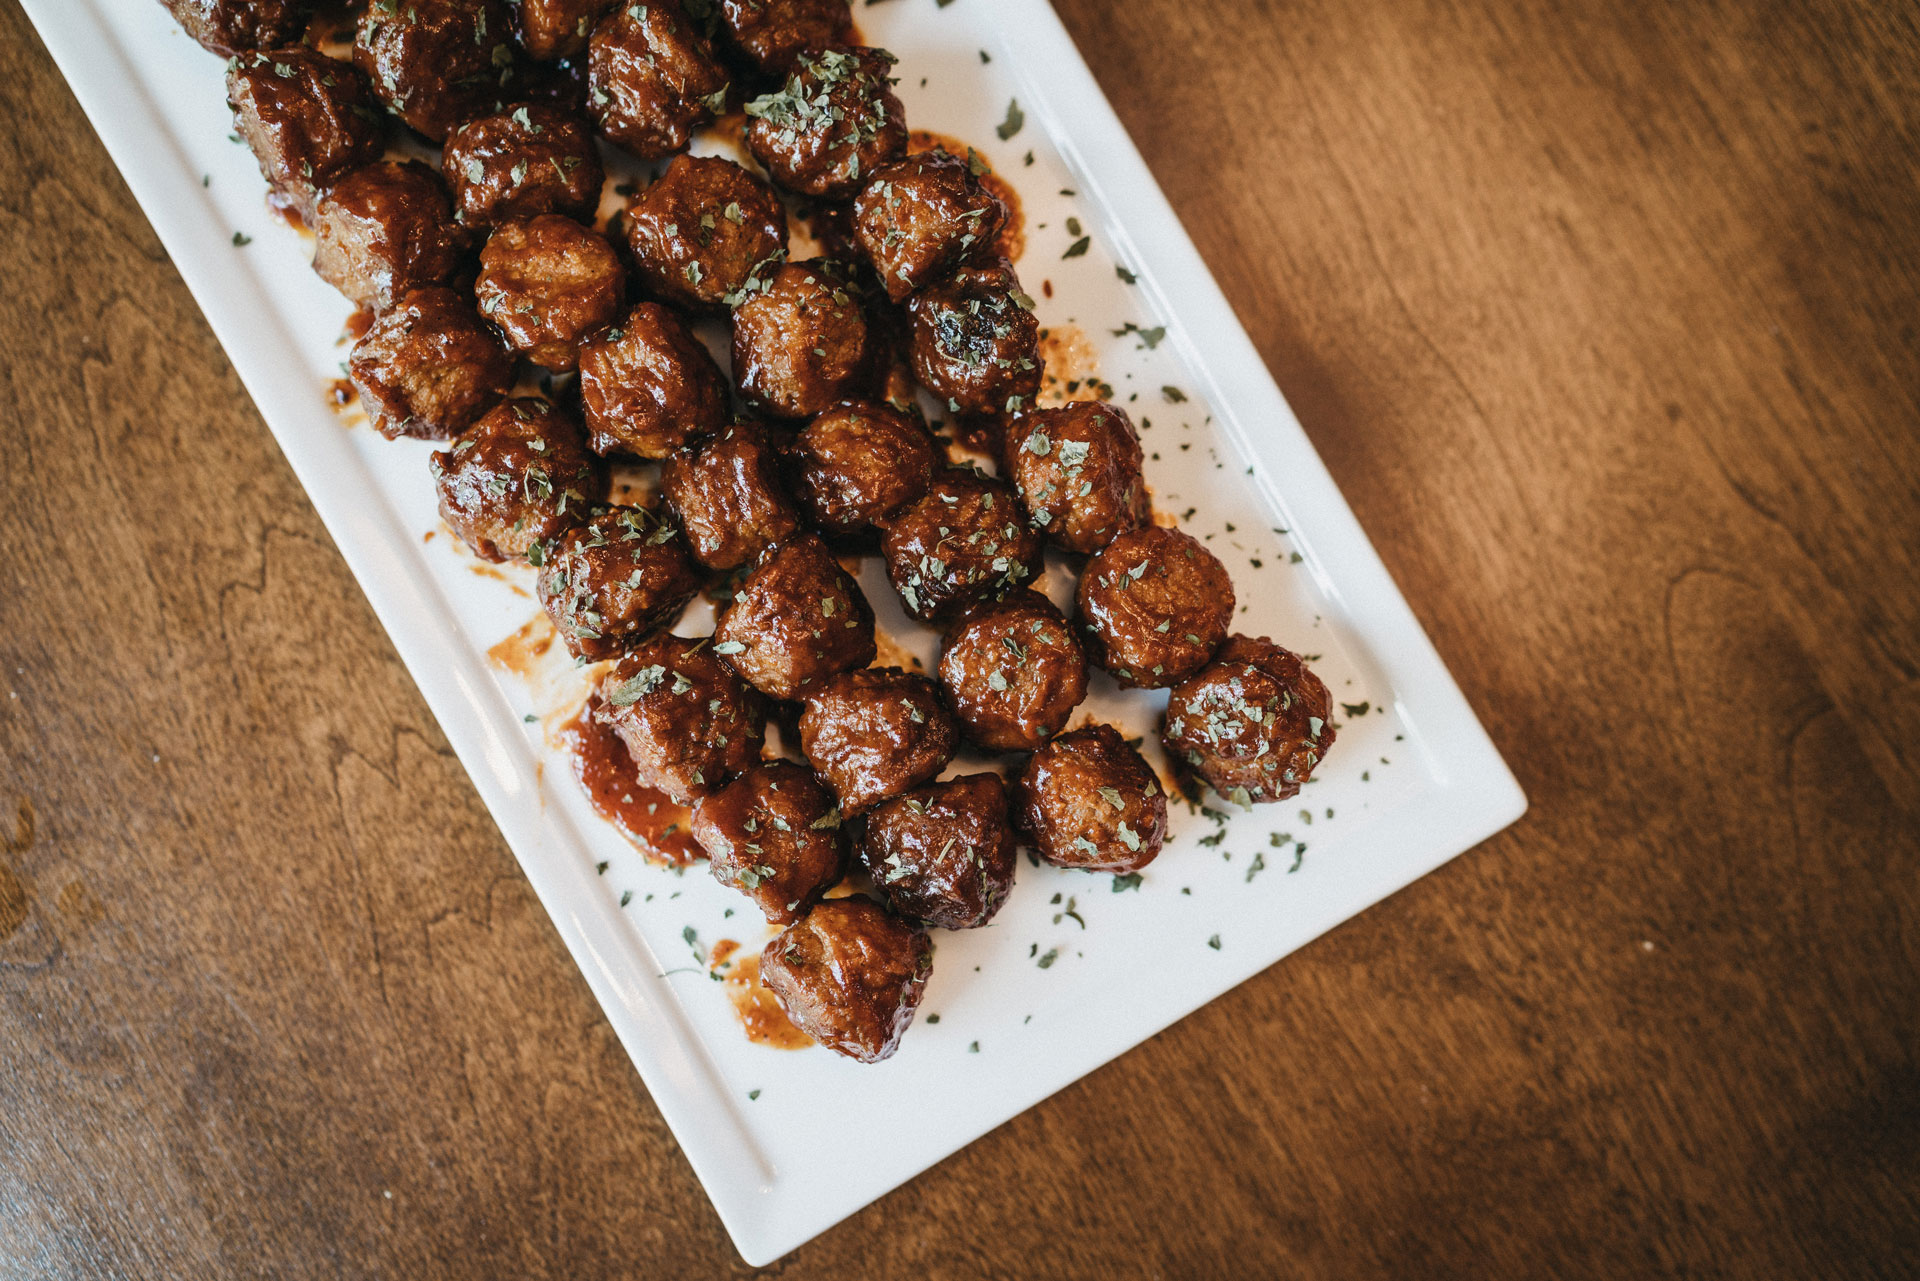 Edley's Meatballs